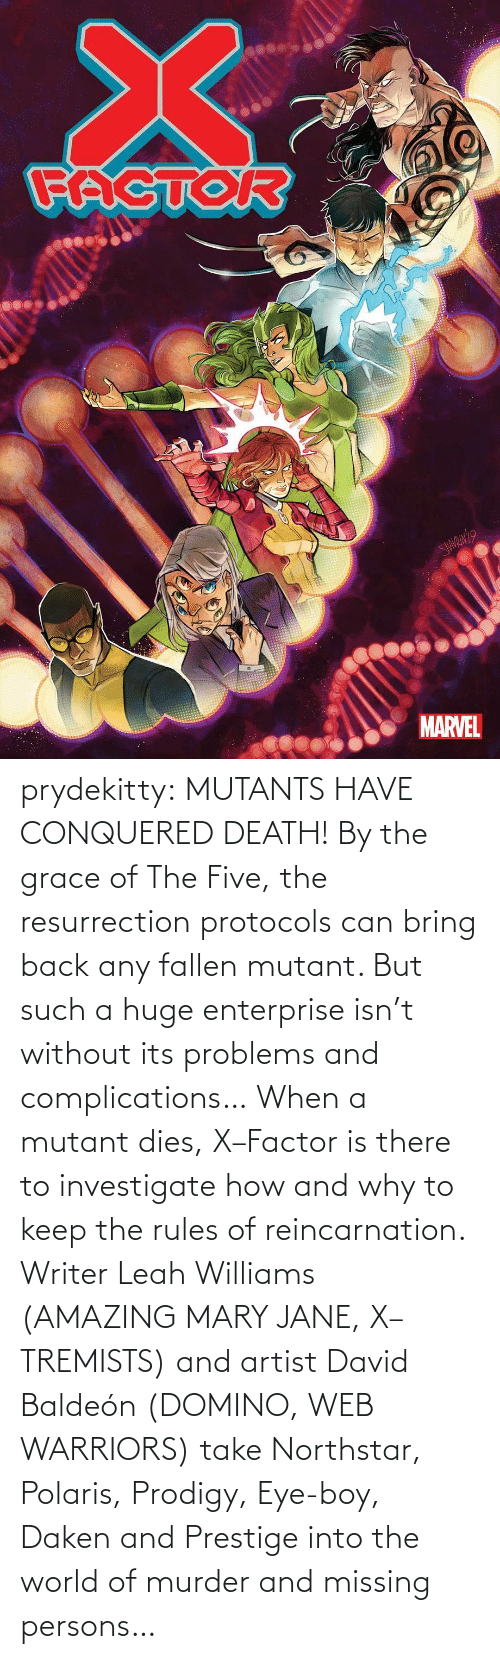 Its: prydekitty:  MUTANTS HAVE CONQUERED DEATH! By the grace of The Five, the resurrection protocols can bring back any fallen mutant. But such a huge enterprise isn't without its problems and complications… When a mutant dies, X–Factor is there to investigate how and why to keep the rules of reincarnation. Writer Leah Williams (AMAZING MARY JANE, X–TREMISTS) and artist David Baldeón (DOMINO, WEB WARRIORS) take Northstar, Polaris, Prodigy, Eye-boy, Daken and Prestige into the world of murder and missing persons…